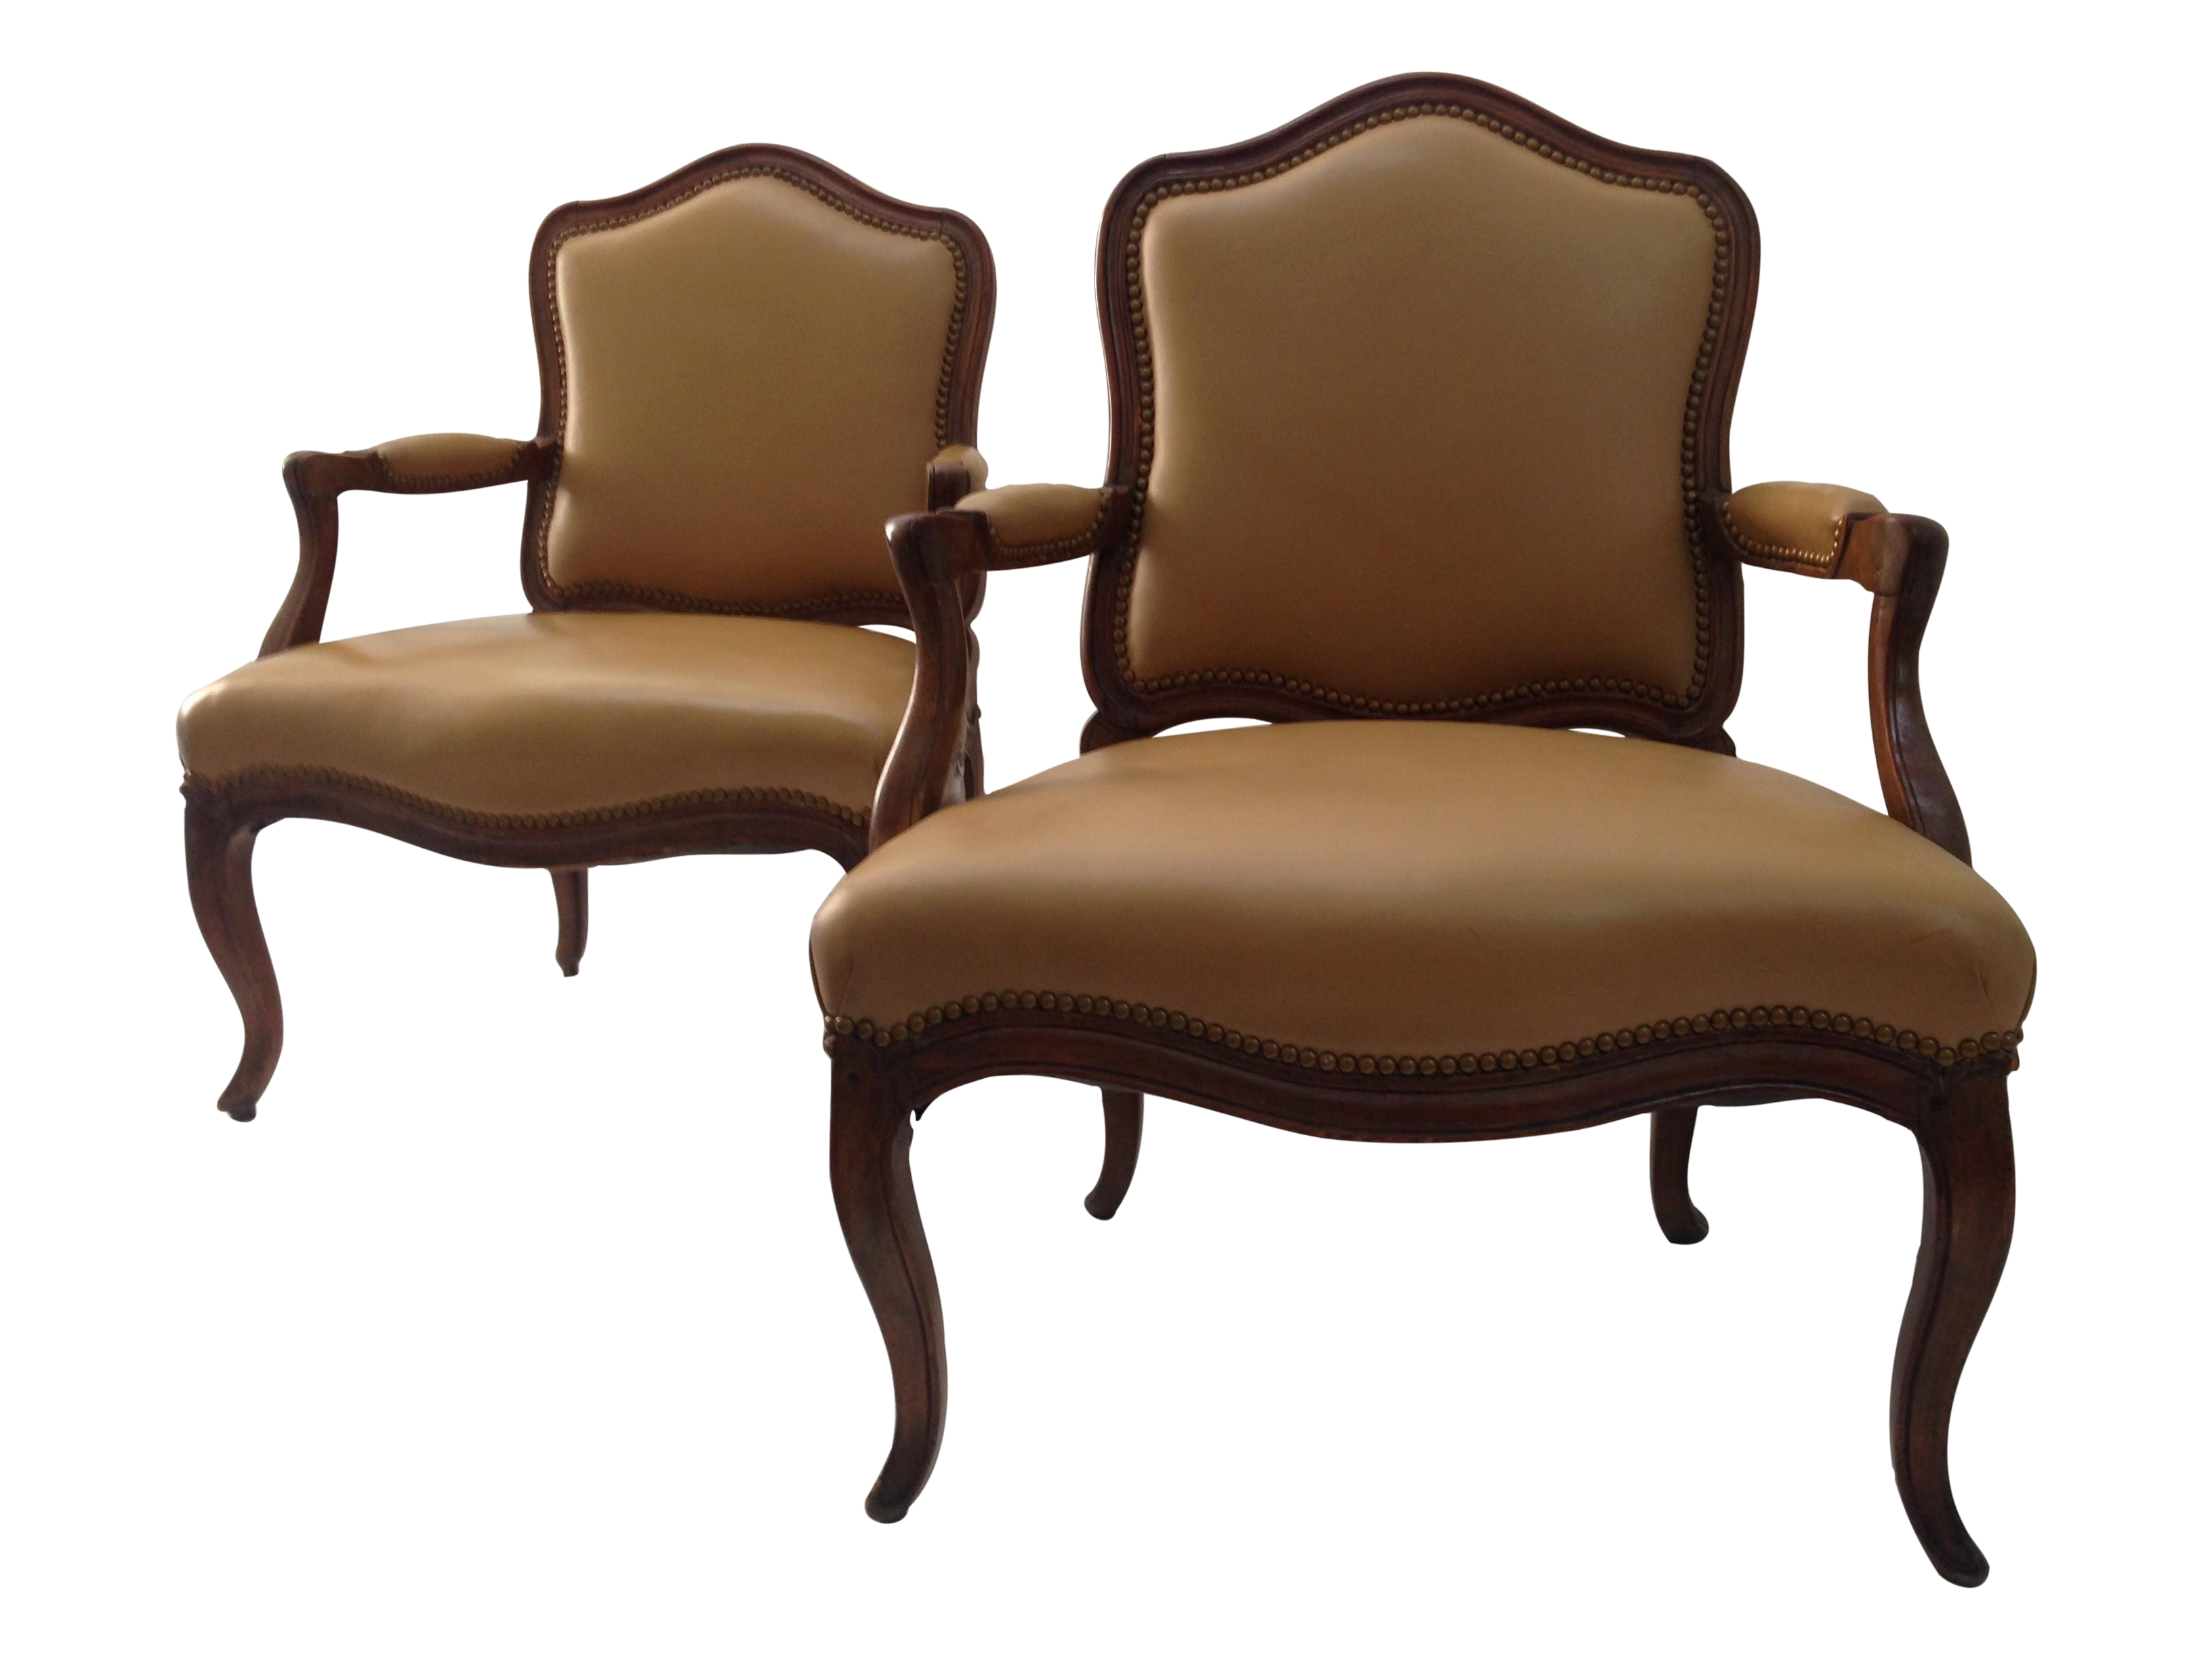 Maison jansen style leather bergere chairs pair chairish for Table bergere